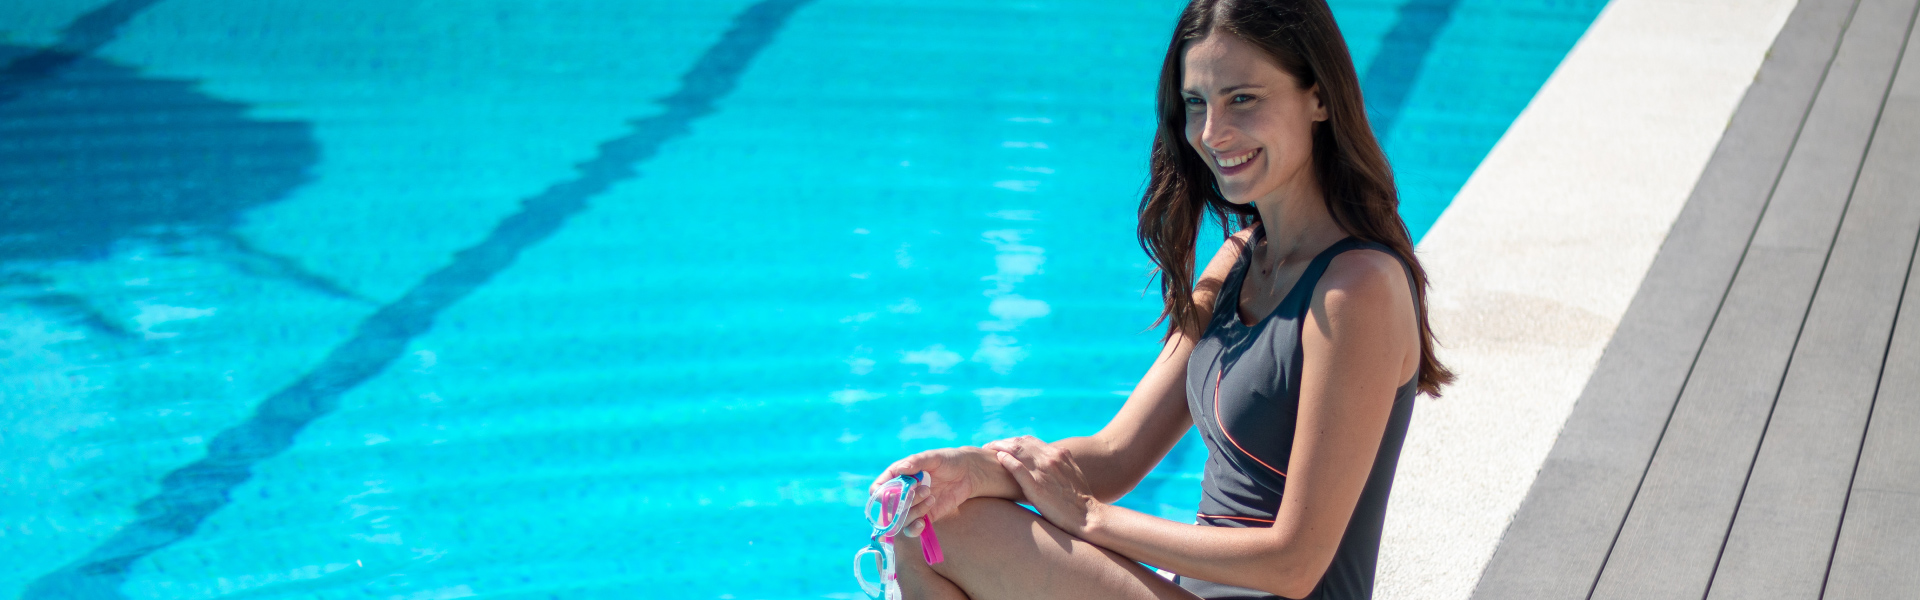 New Year's Swim Resolutions:  Beginners Four Week Workout Plan